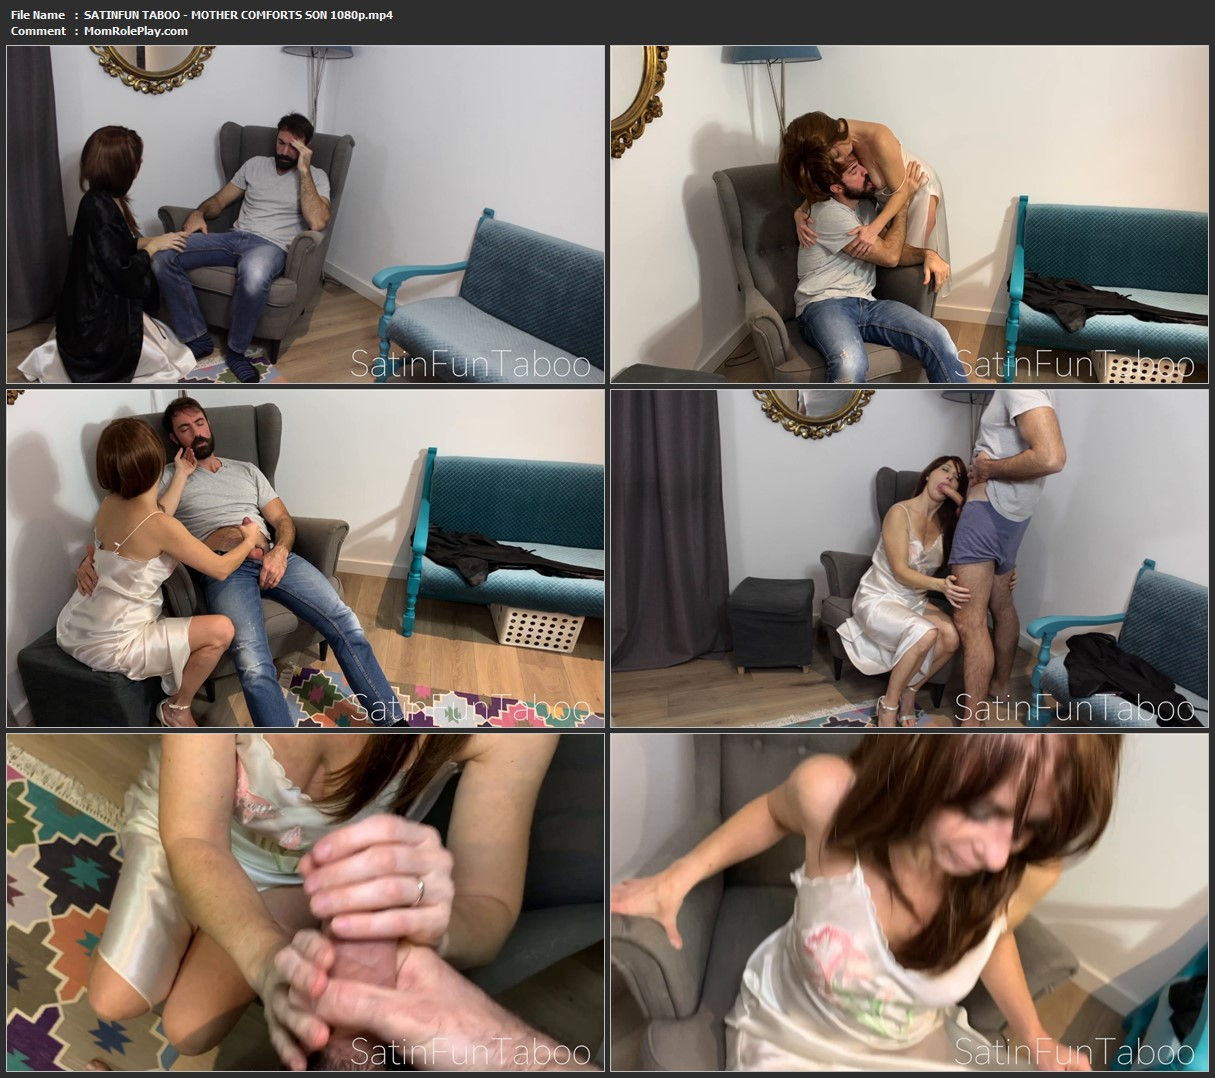 SATINFUN TABOO - MOTHER COMFORTS SON 1080p